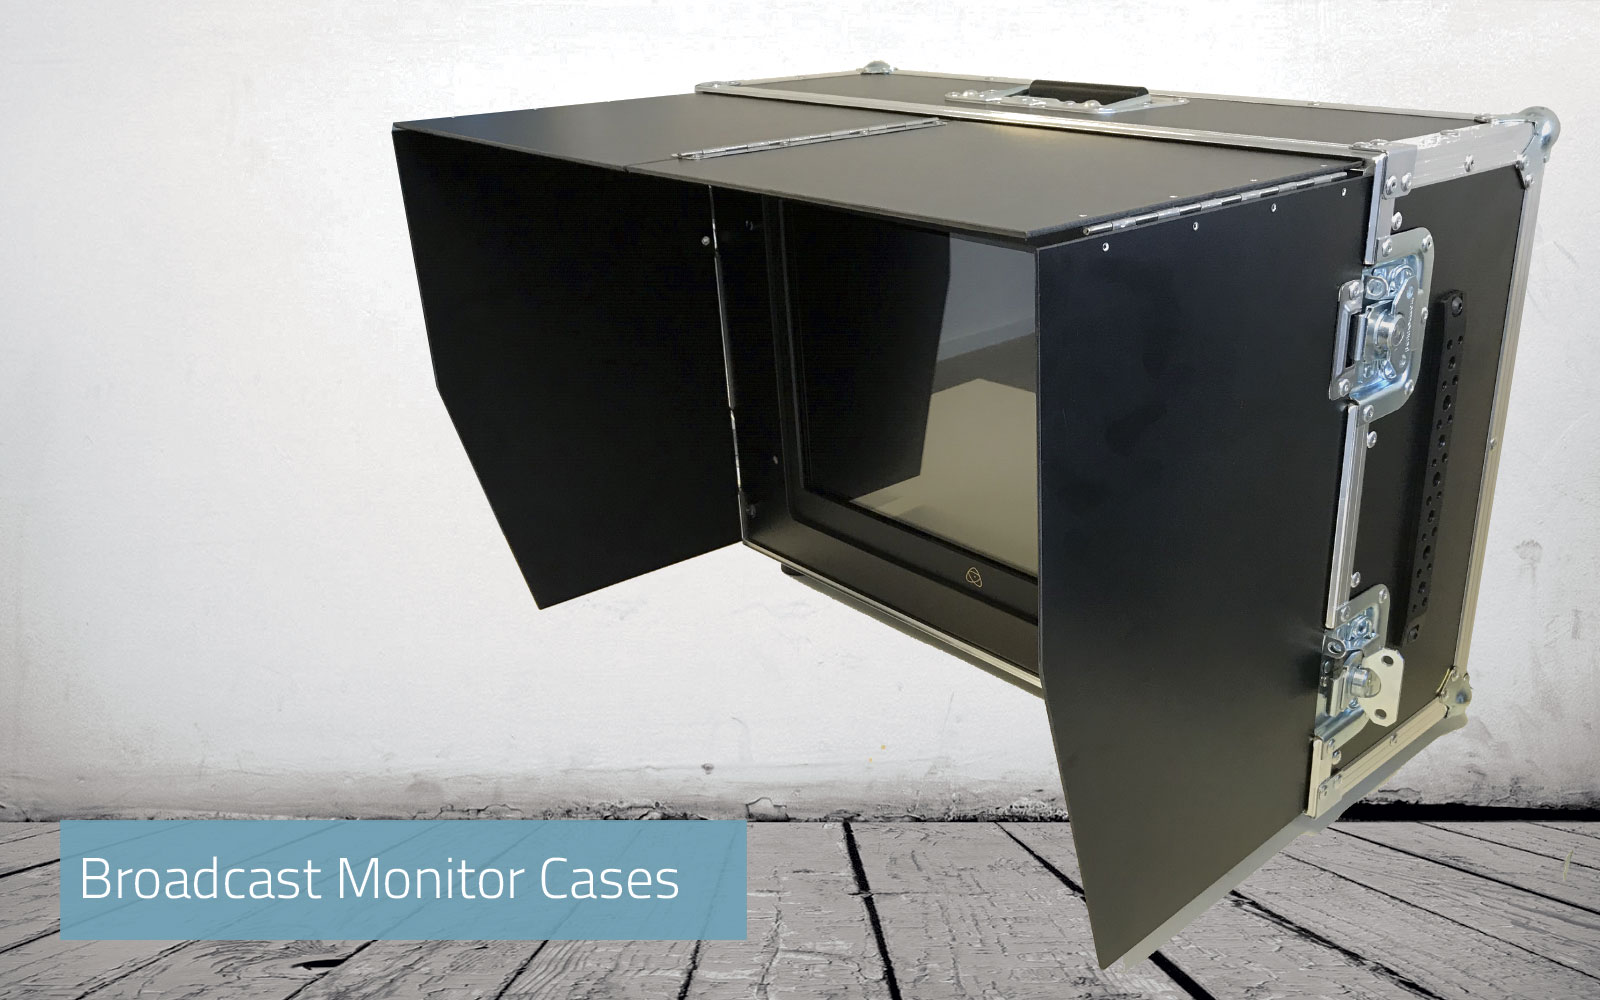 Broadcast Monitor Cases